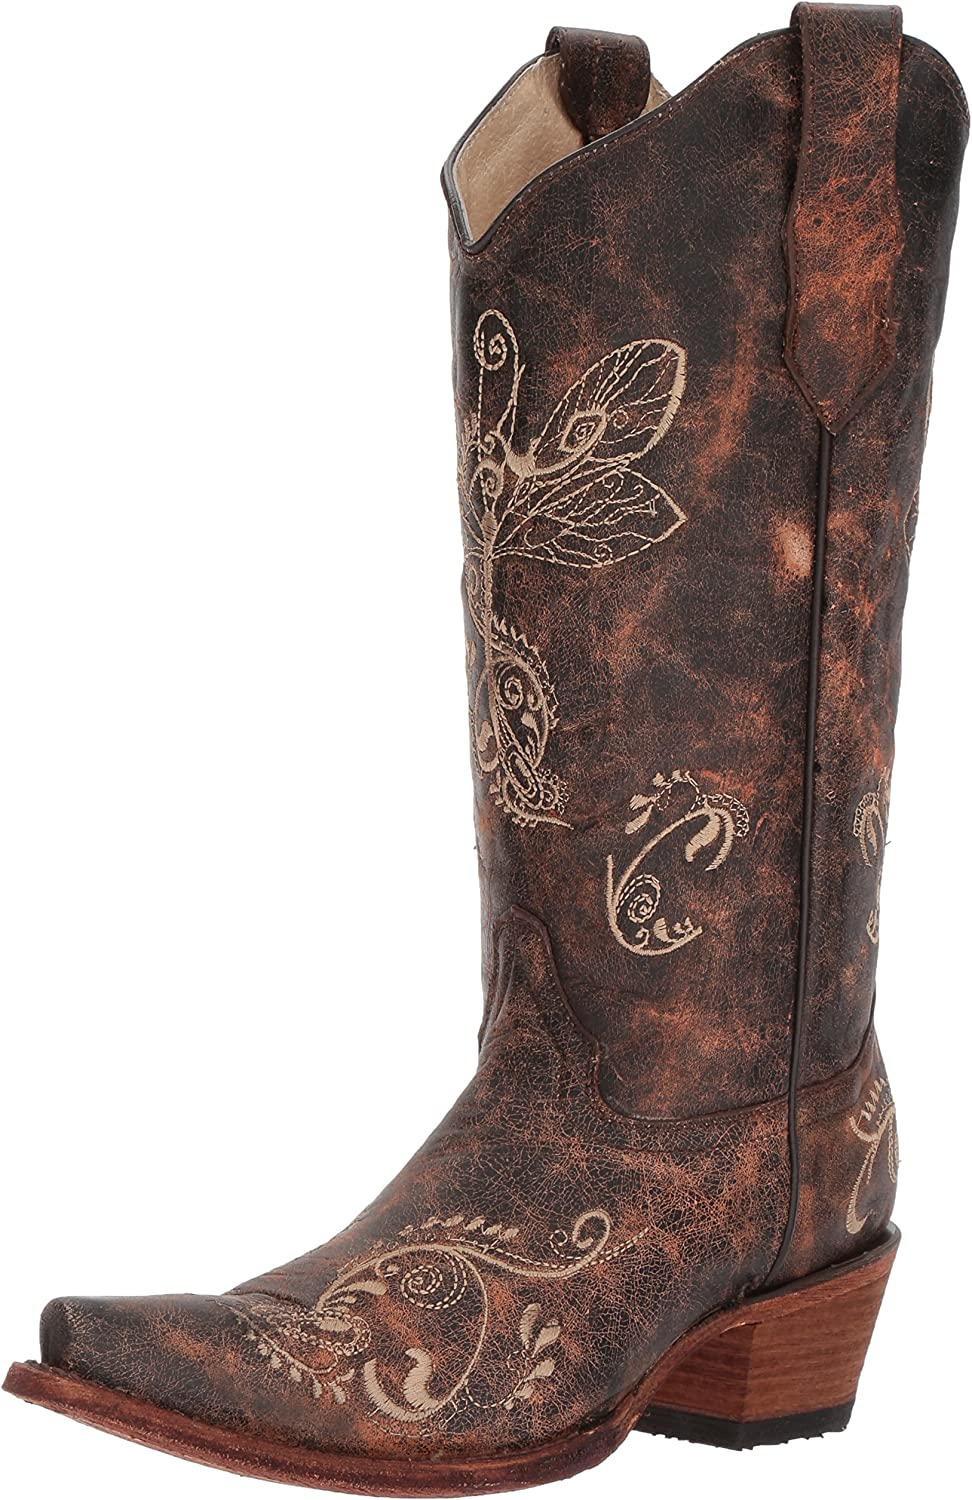 Circle G Women's Distressed Bone Dragonfly Embroidered Boot Snip Toe